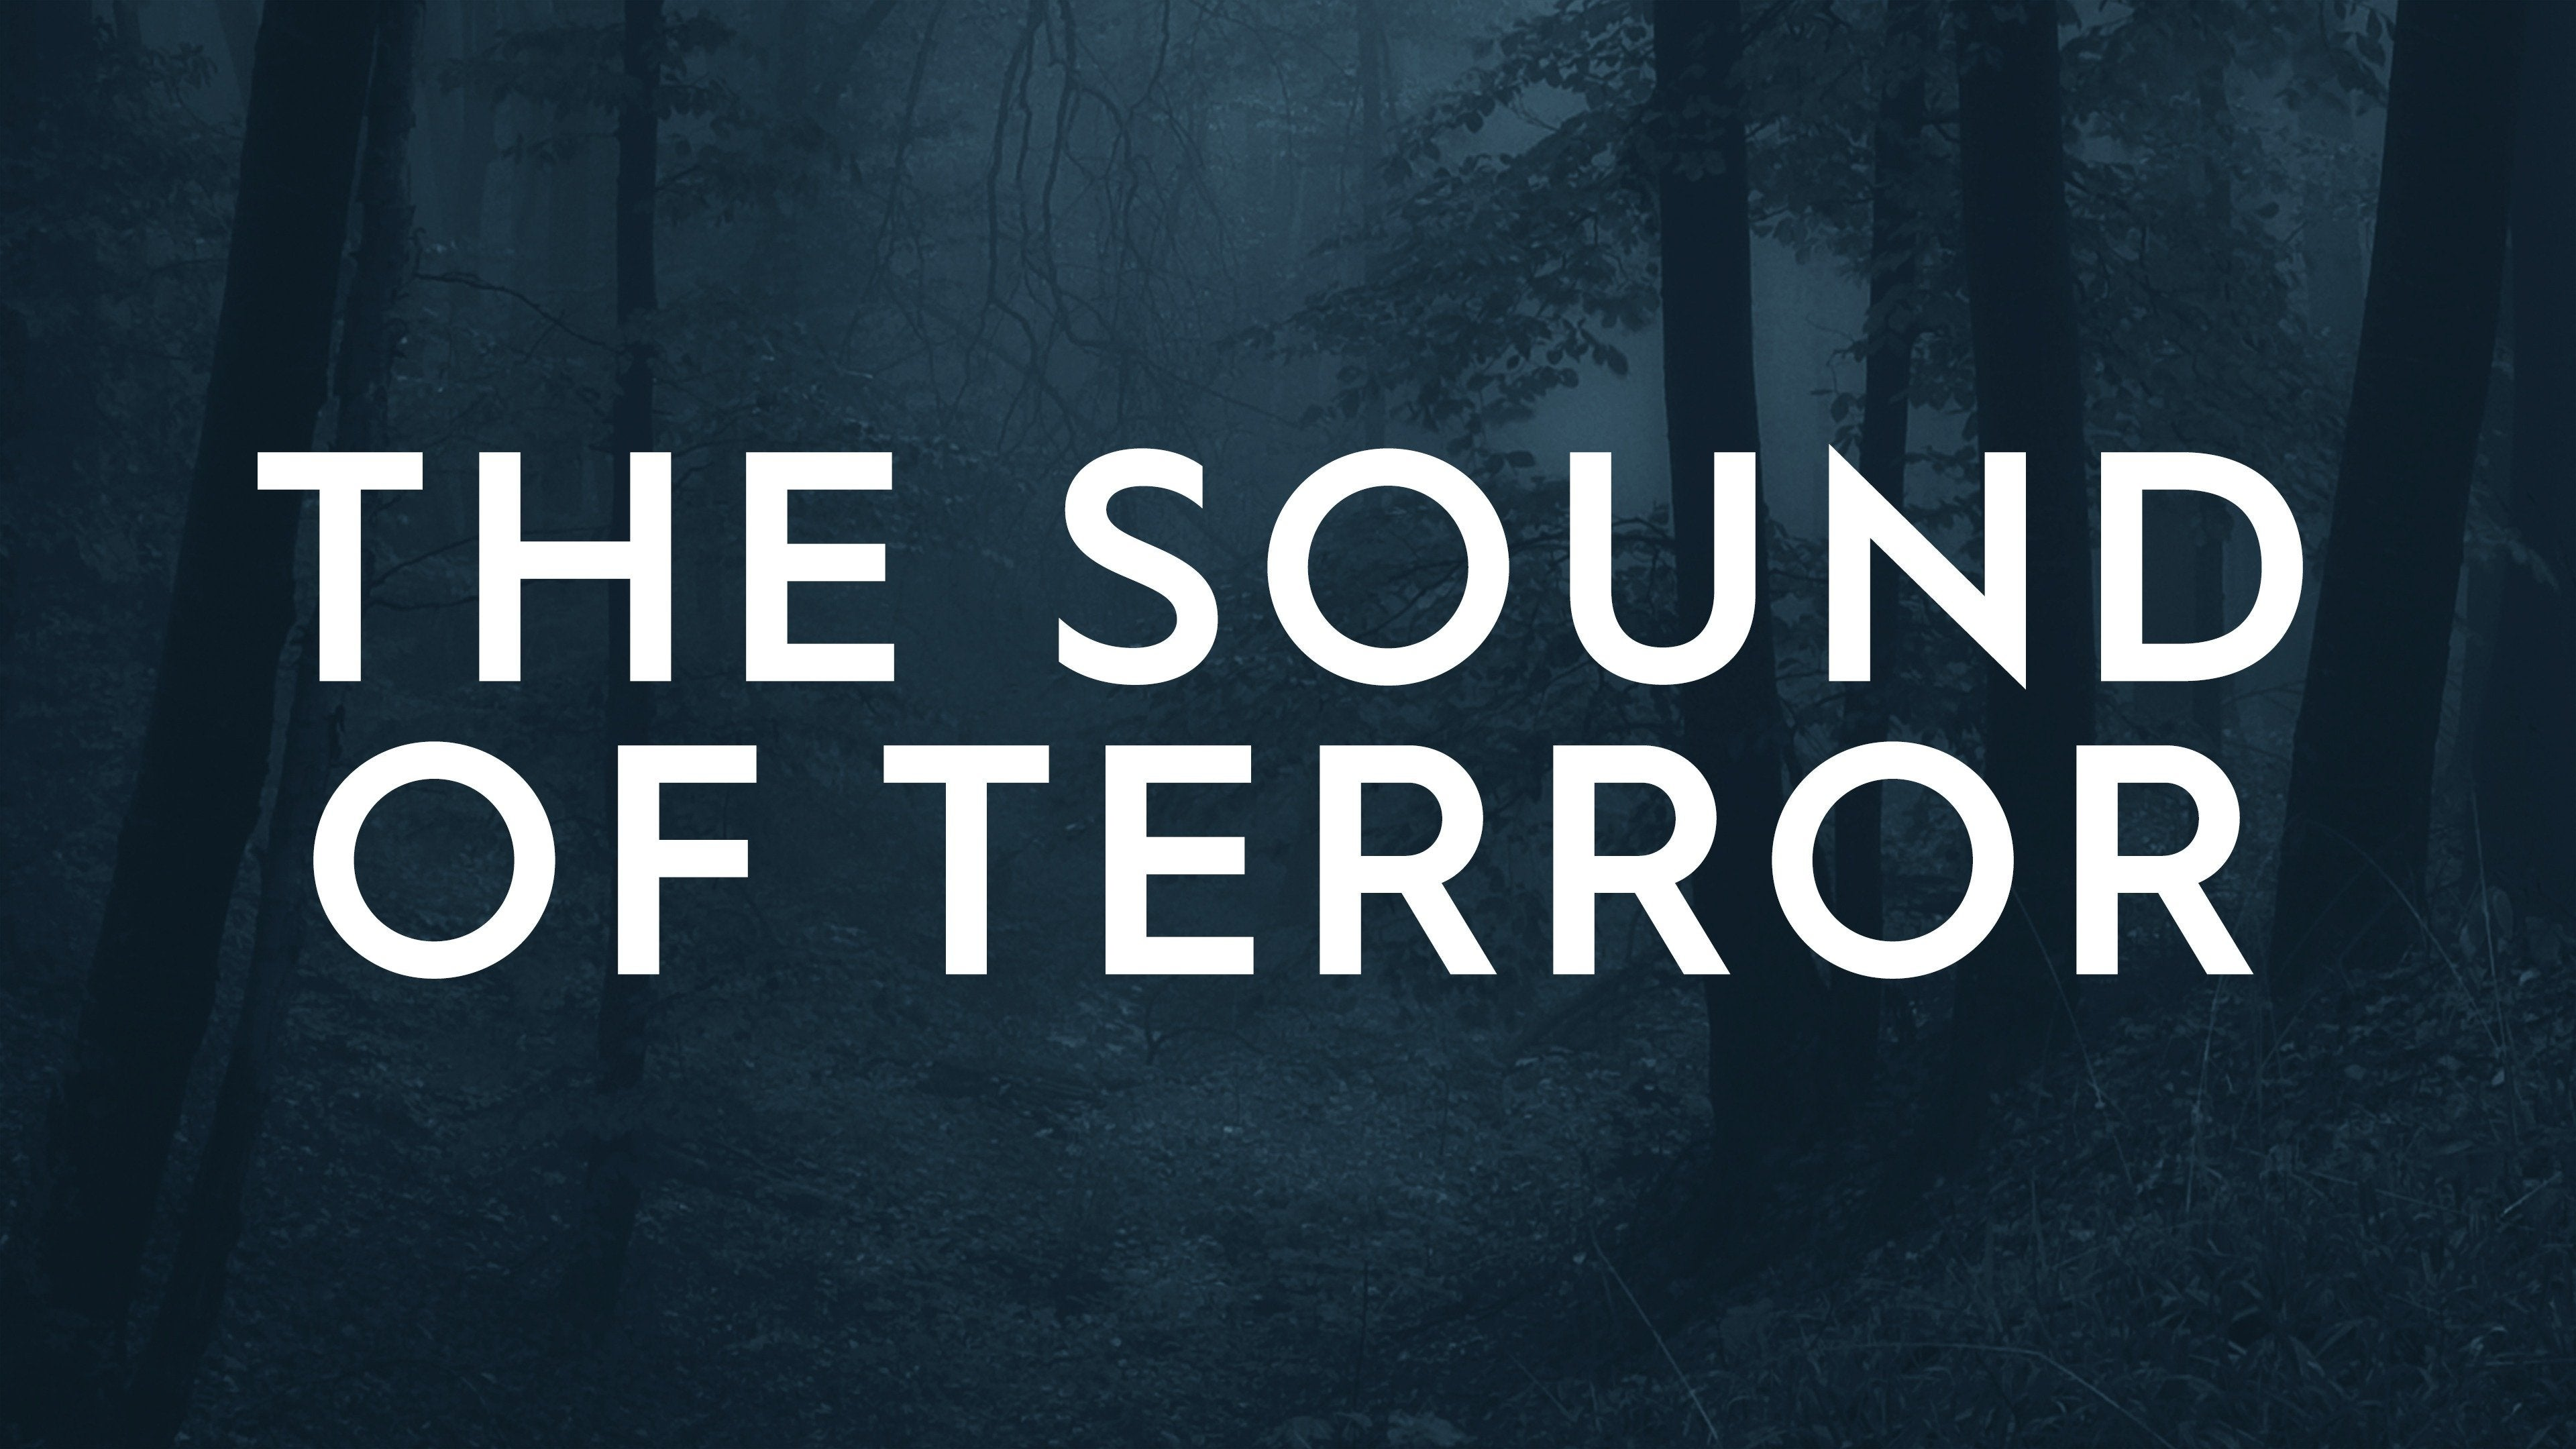 The Sound of Terror